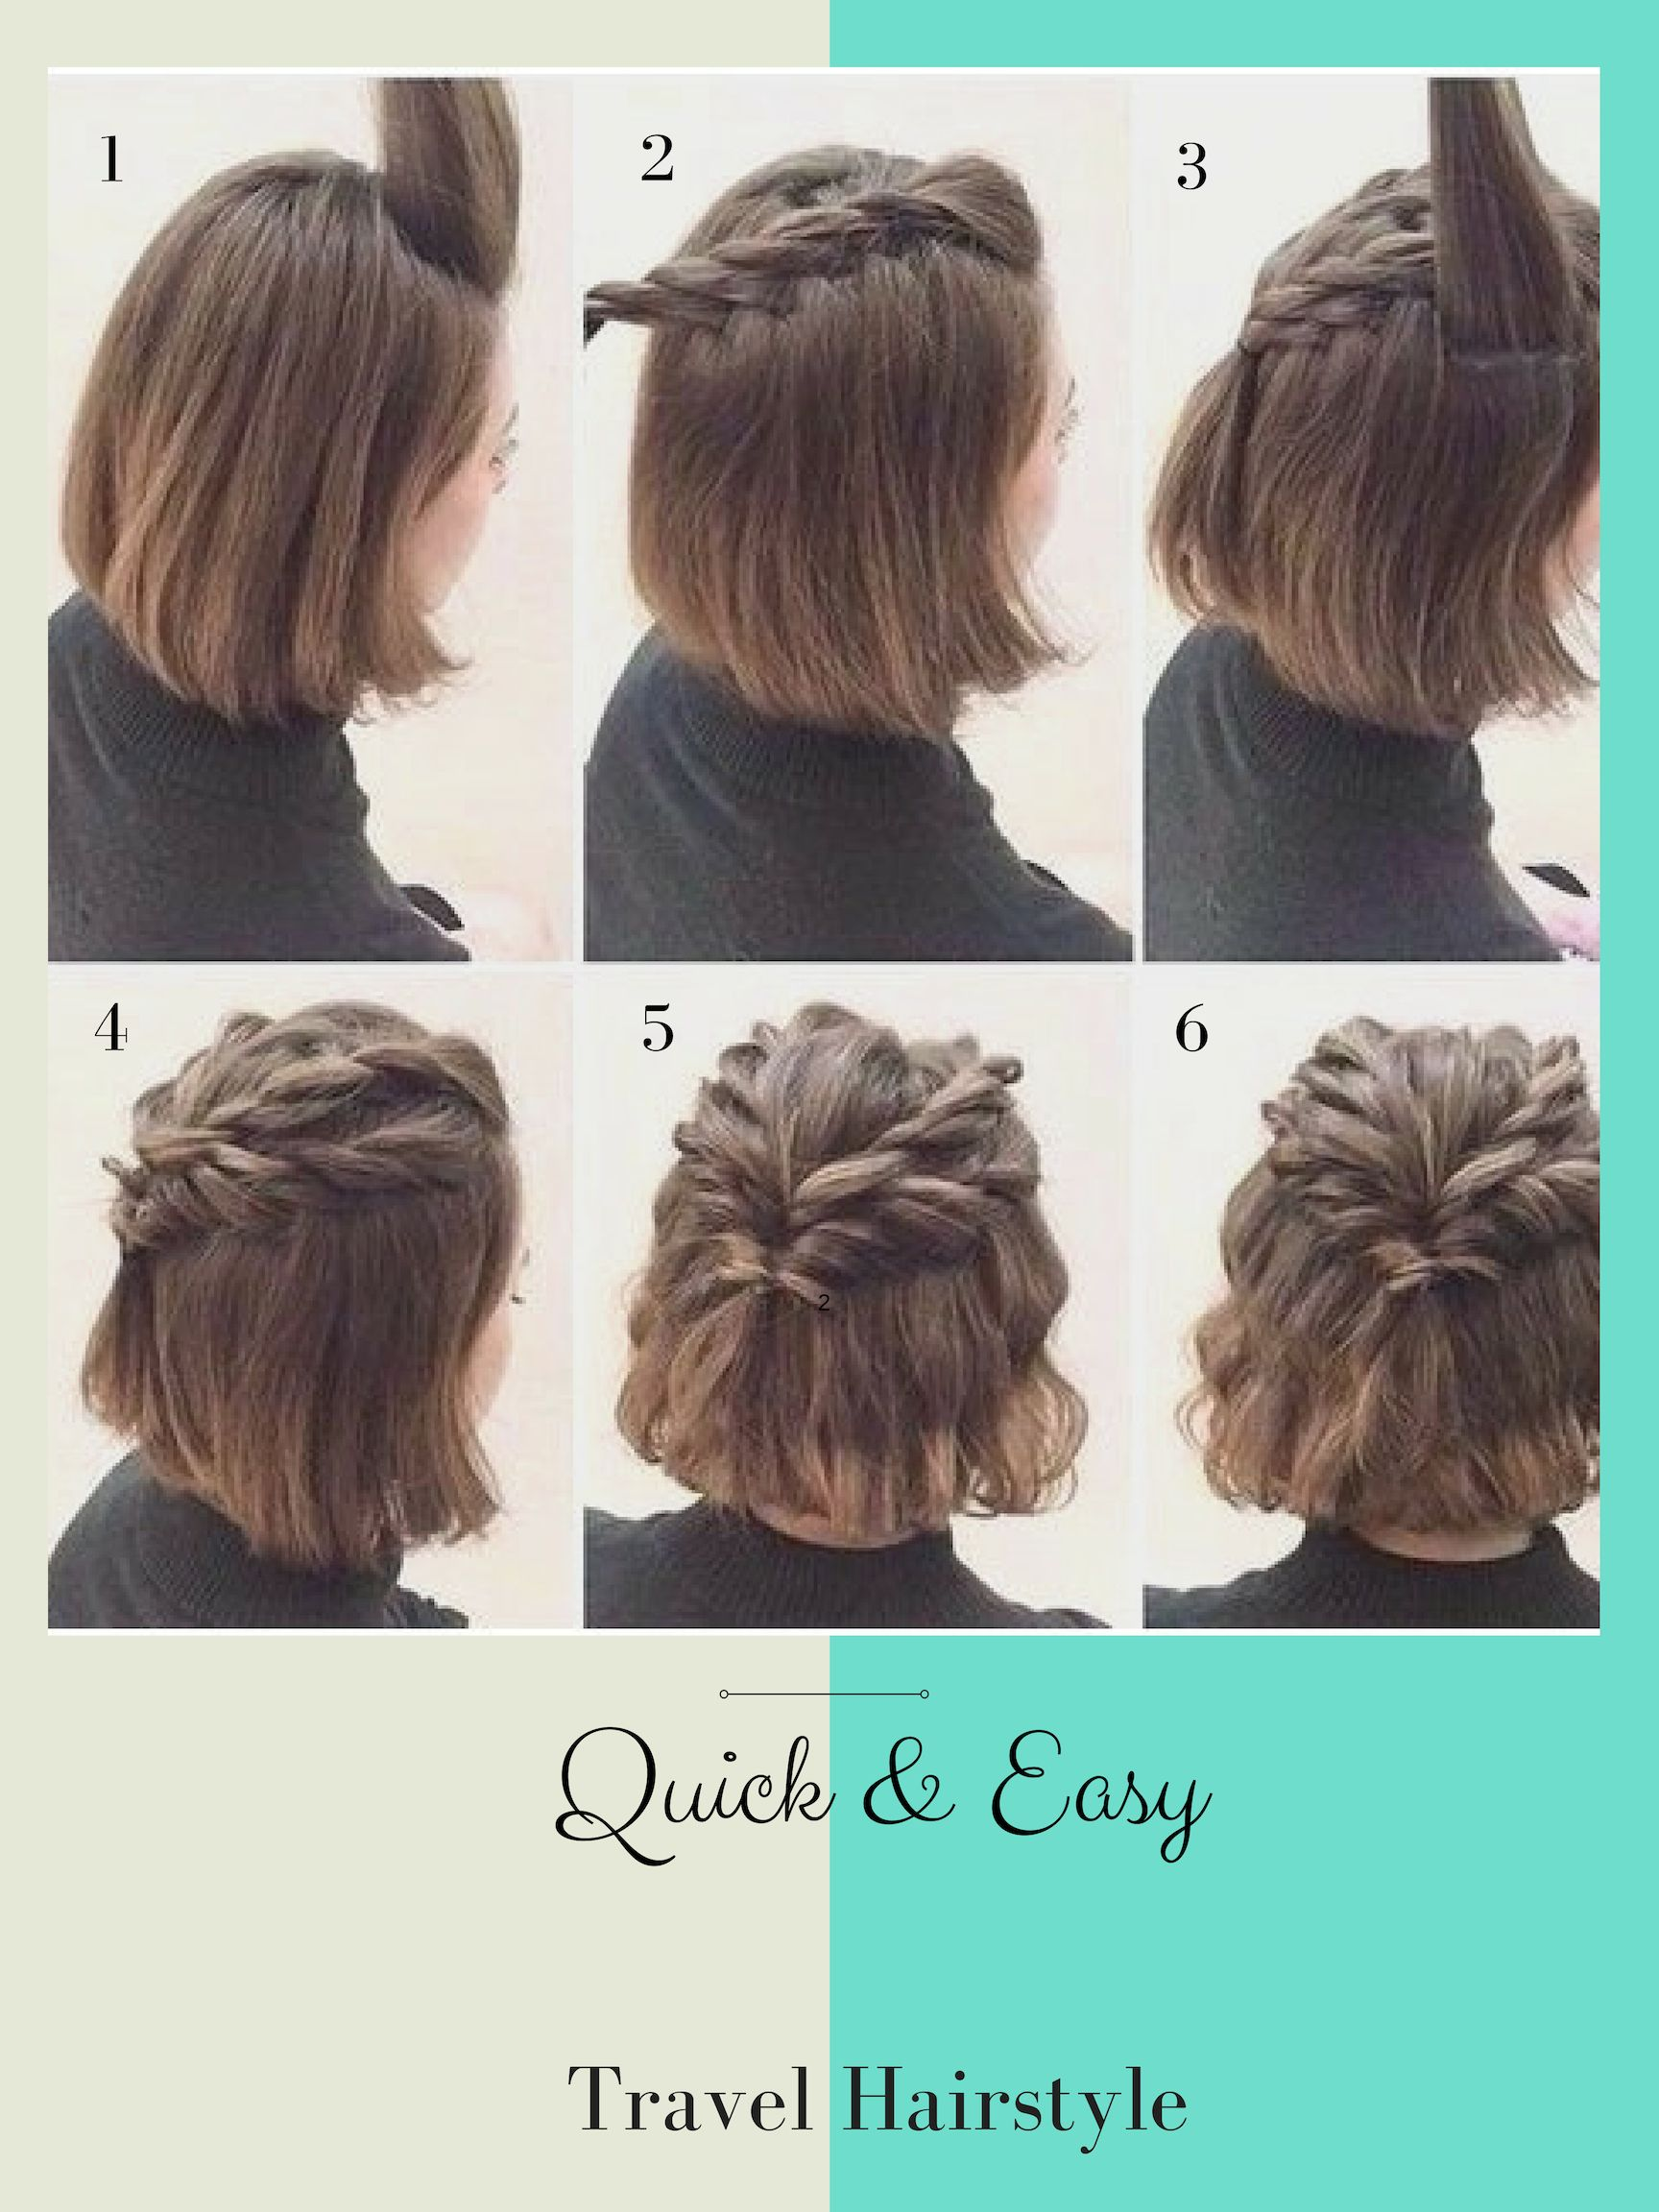 traveling and are in need of a quick hairstyle? try this